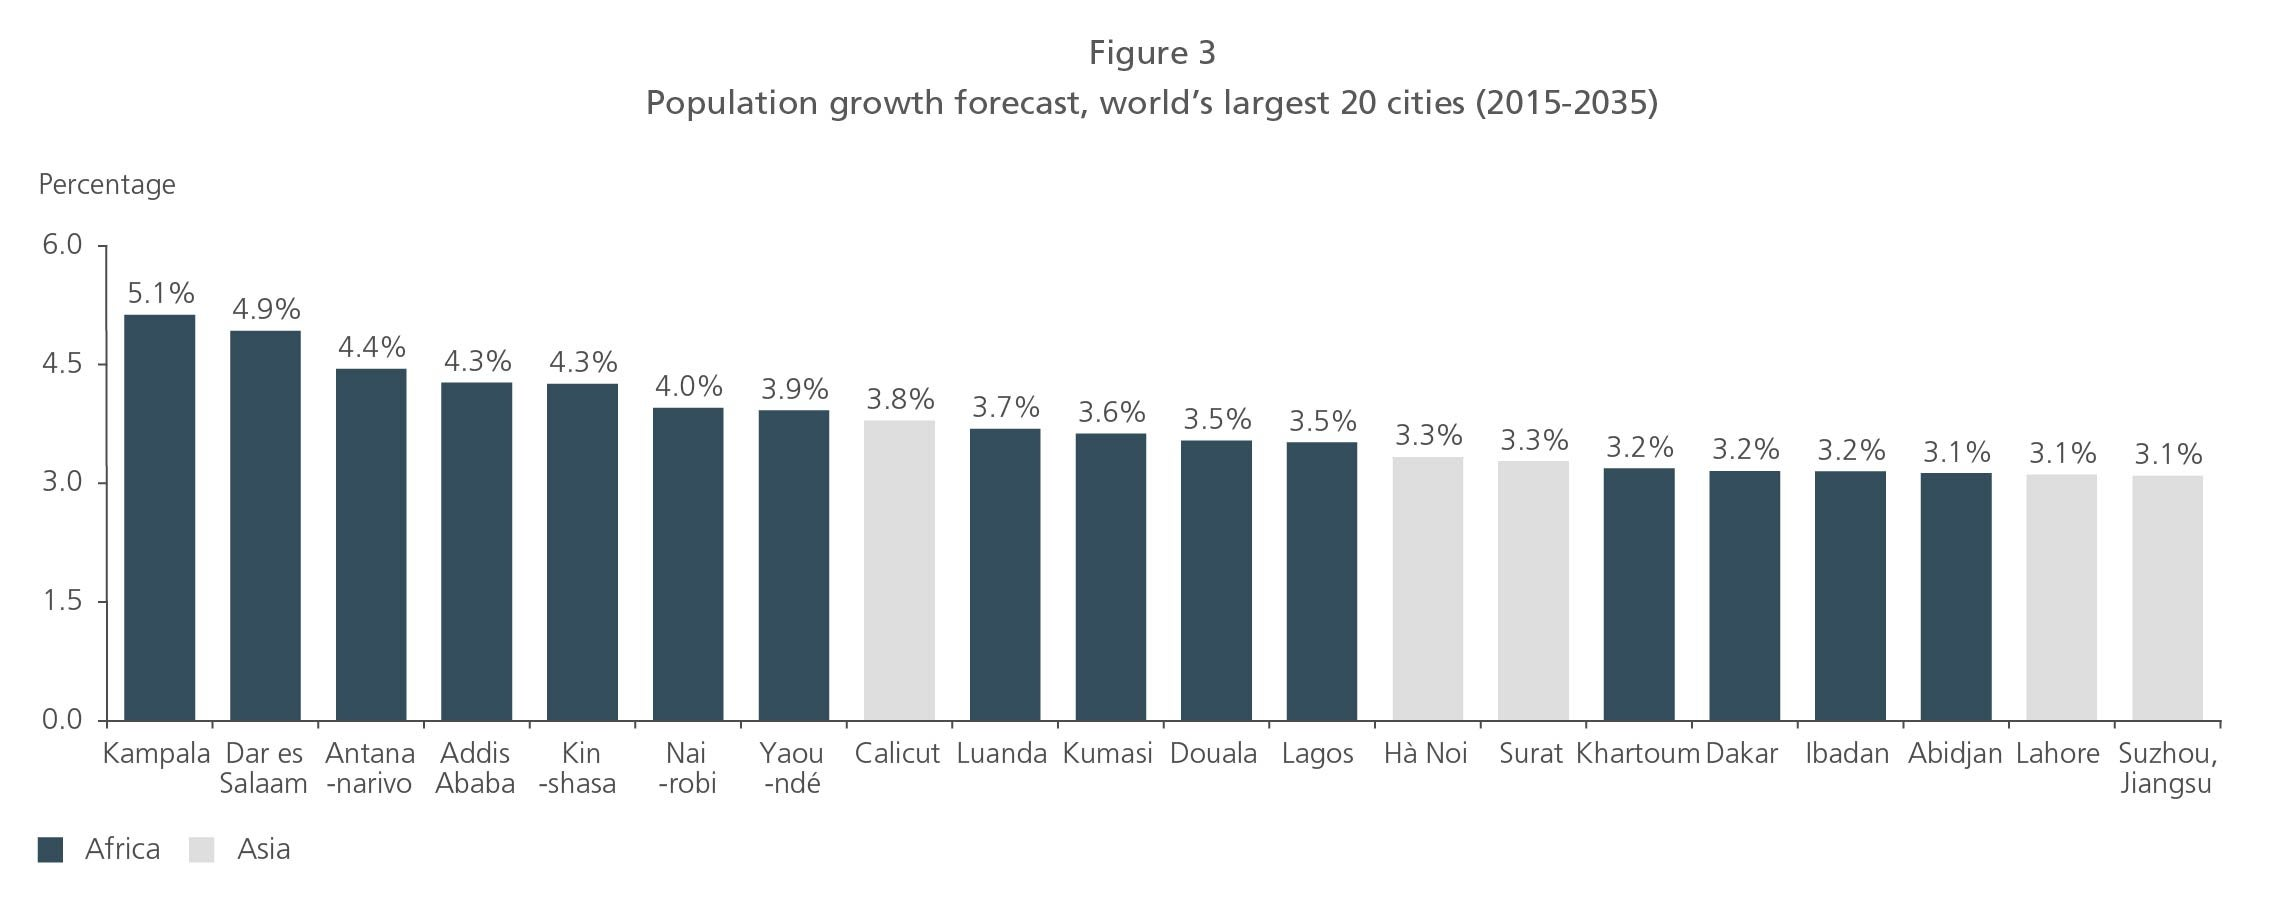 Population Growth Forecast, world's largest 20 cities (2015-2035)